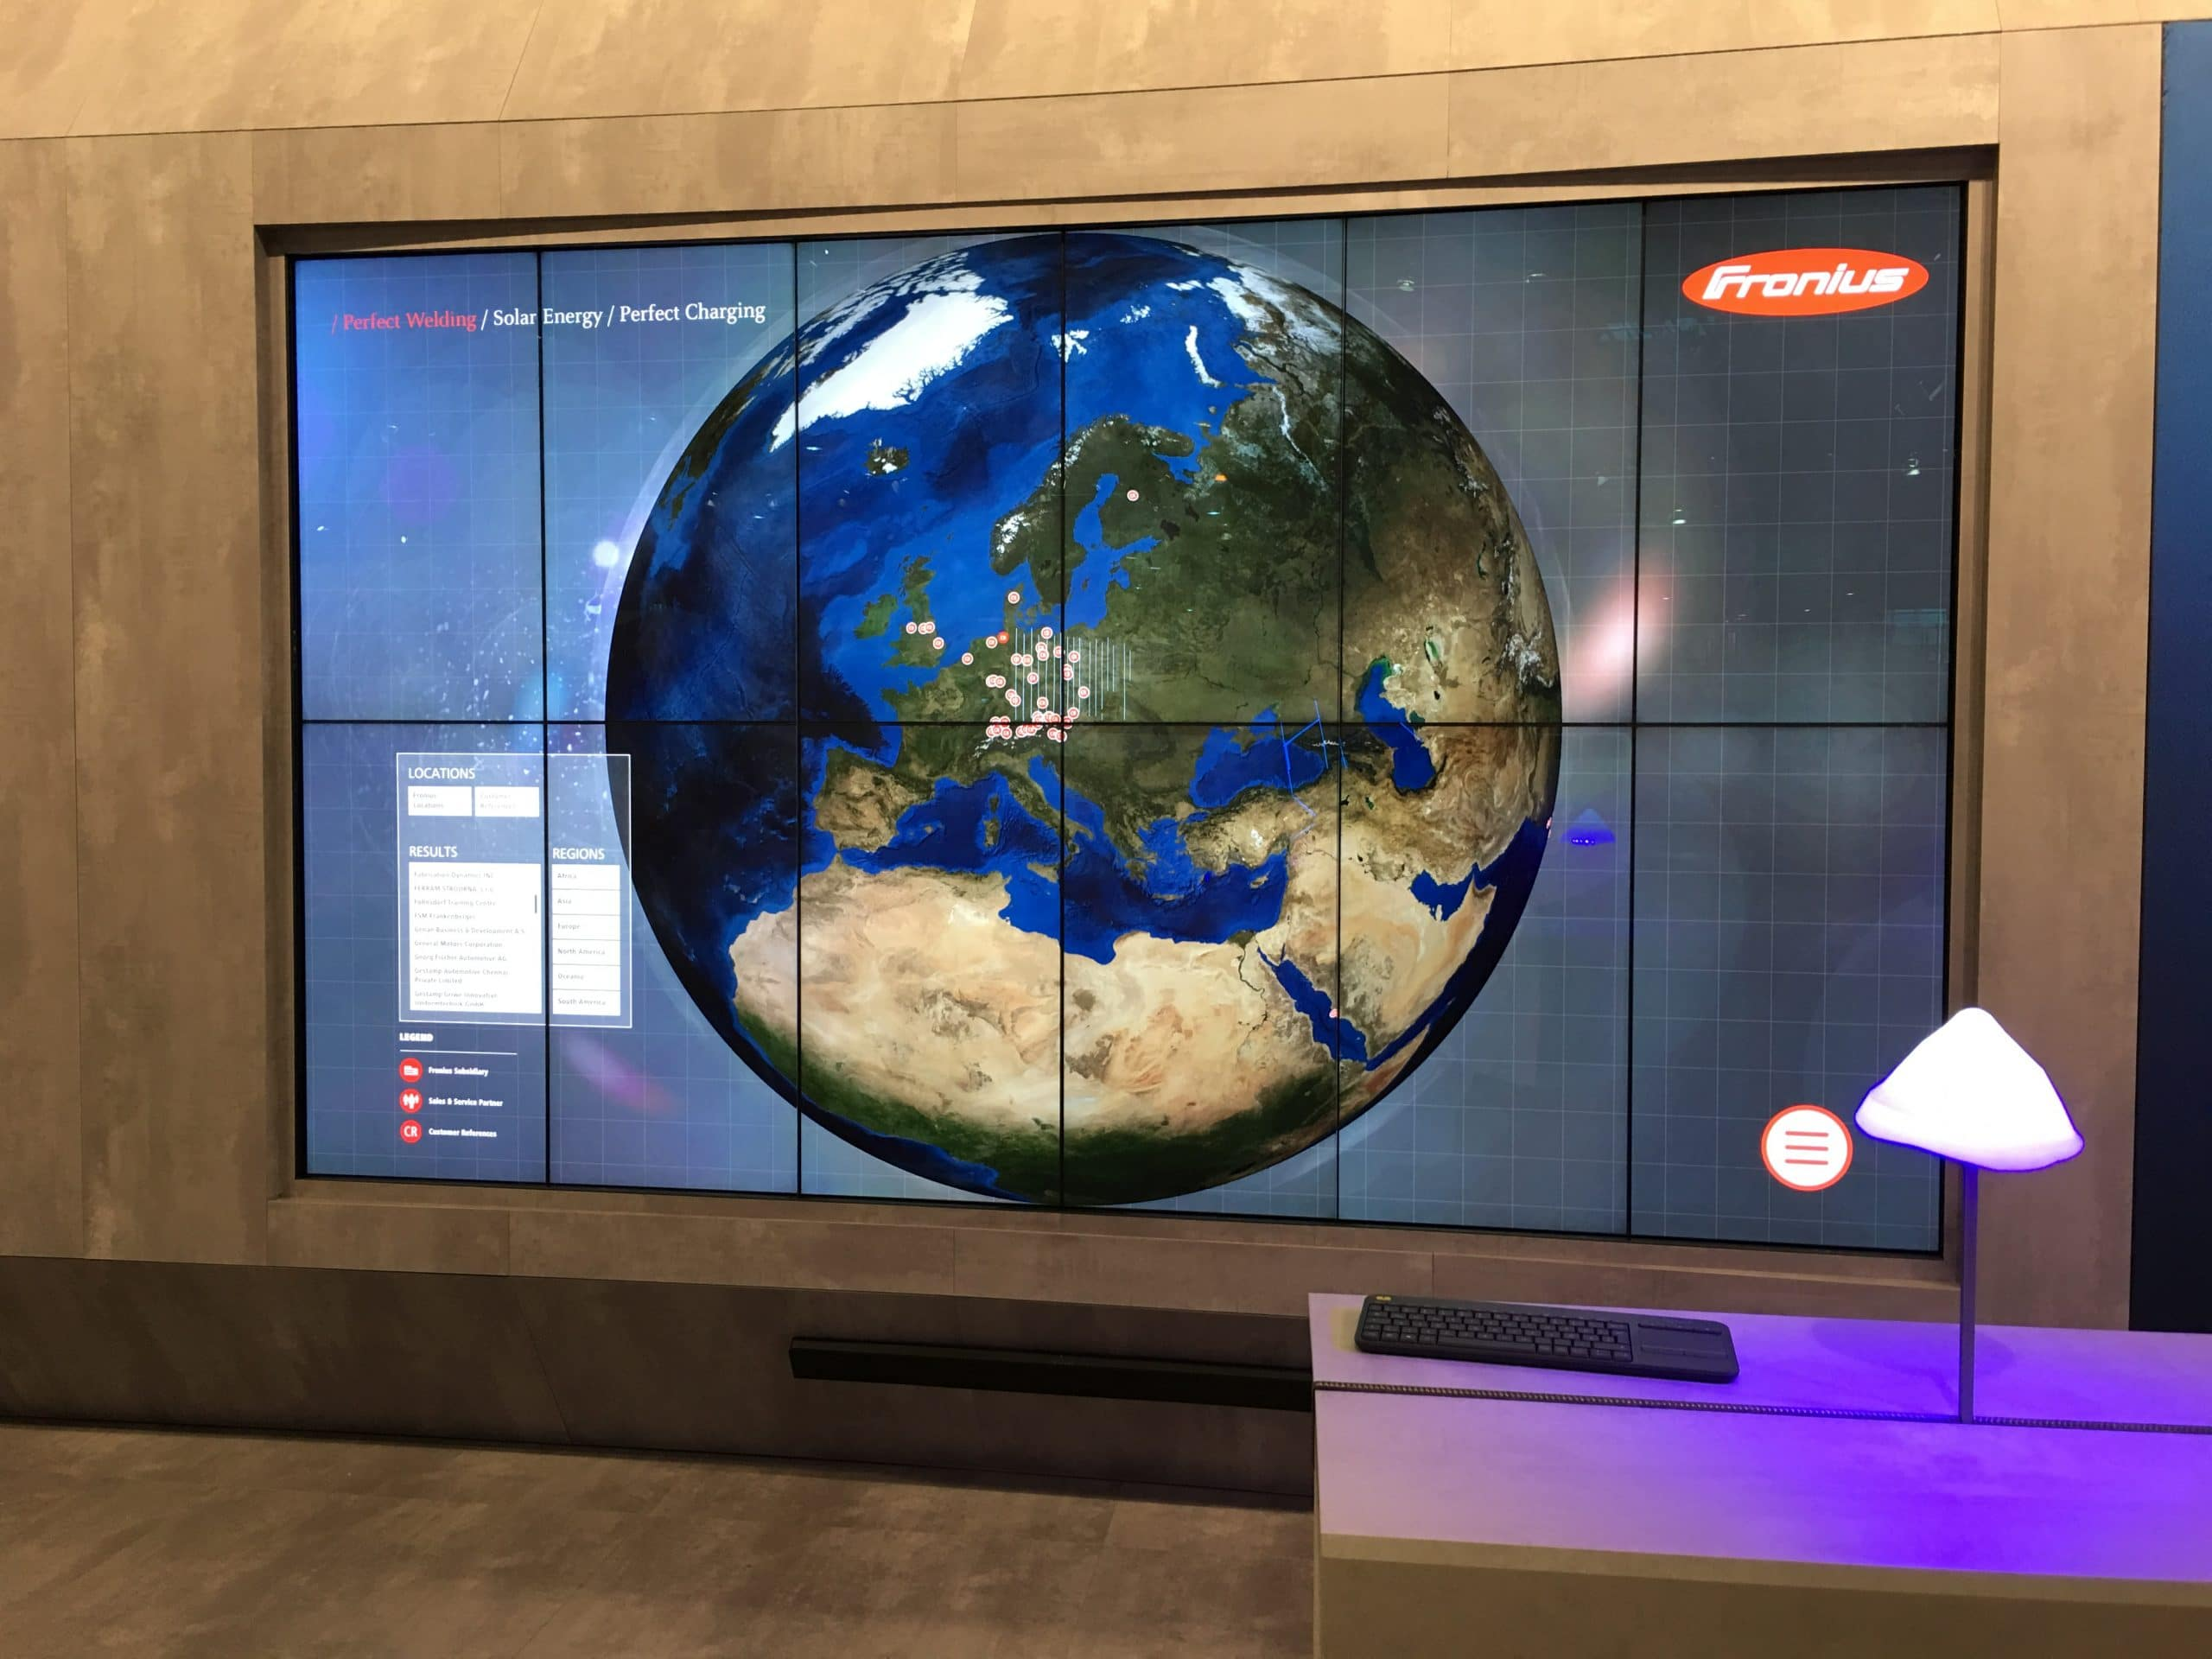 Multitouch-Wall mit 12 Screens: interaktive Weltkugel der Reference Wall